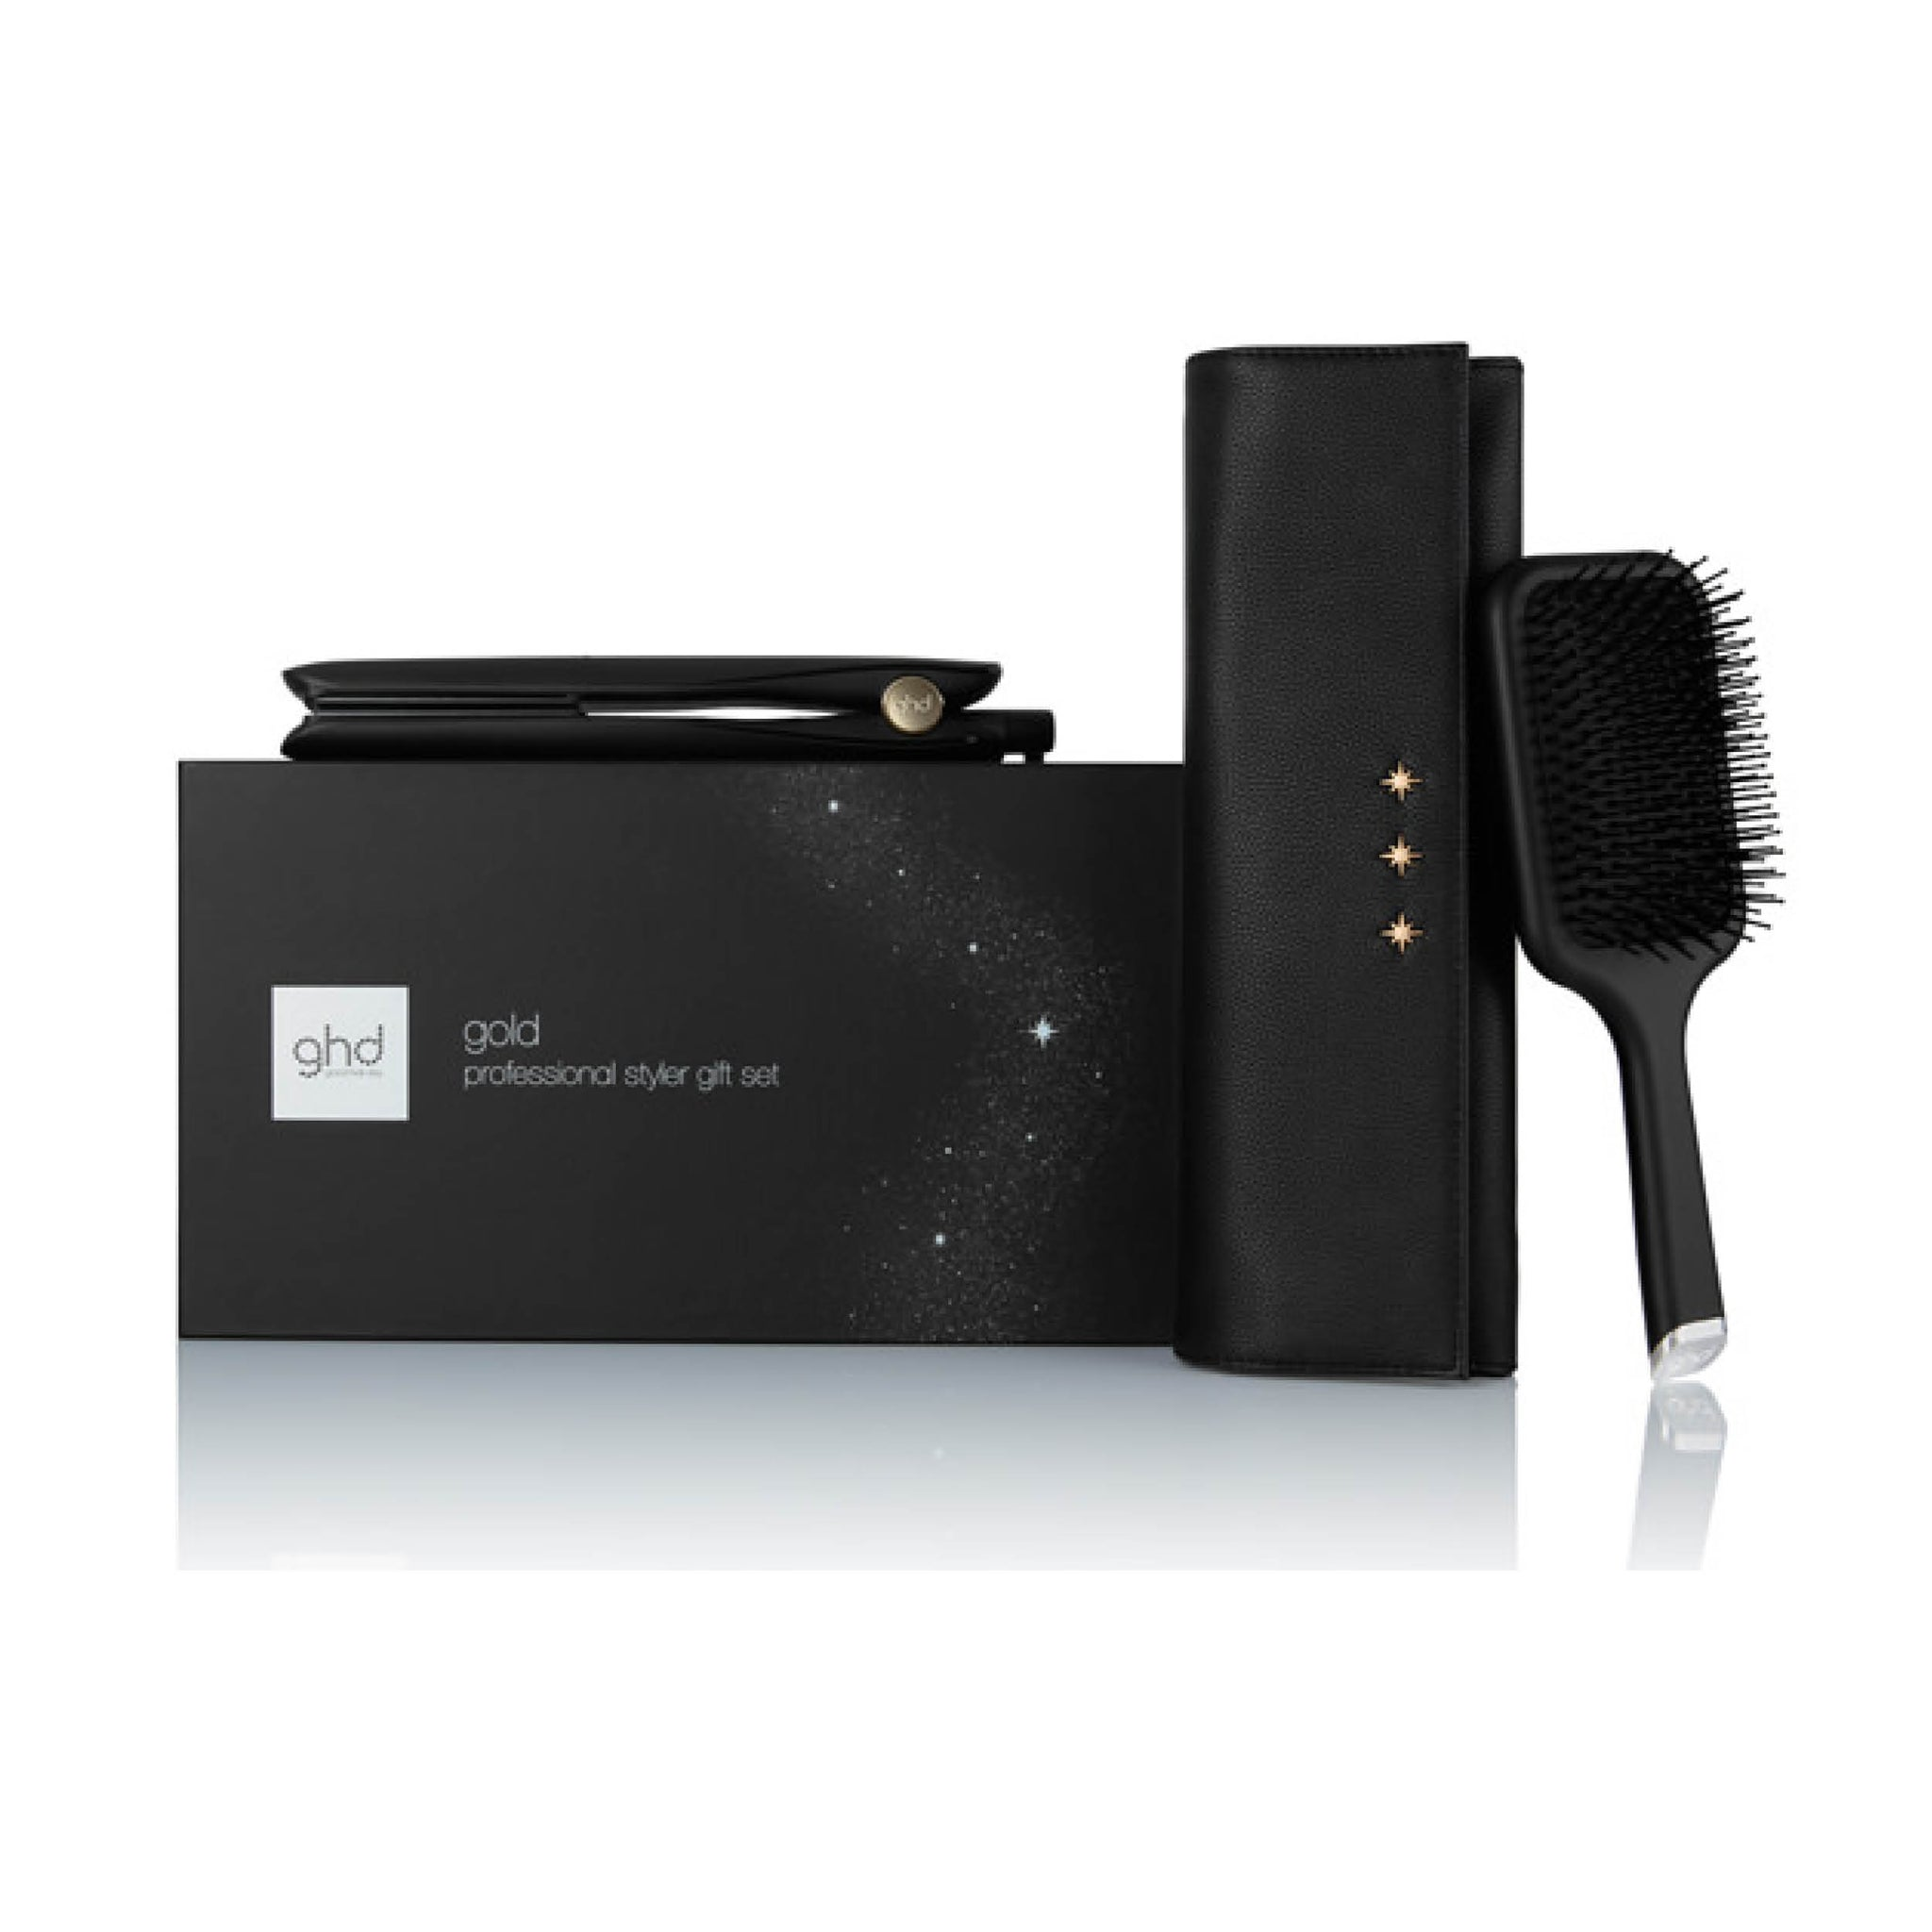 GHD Gold Professional Styler Gift Set